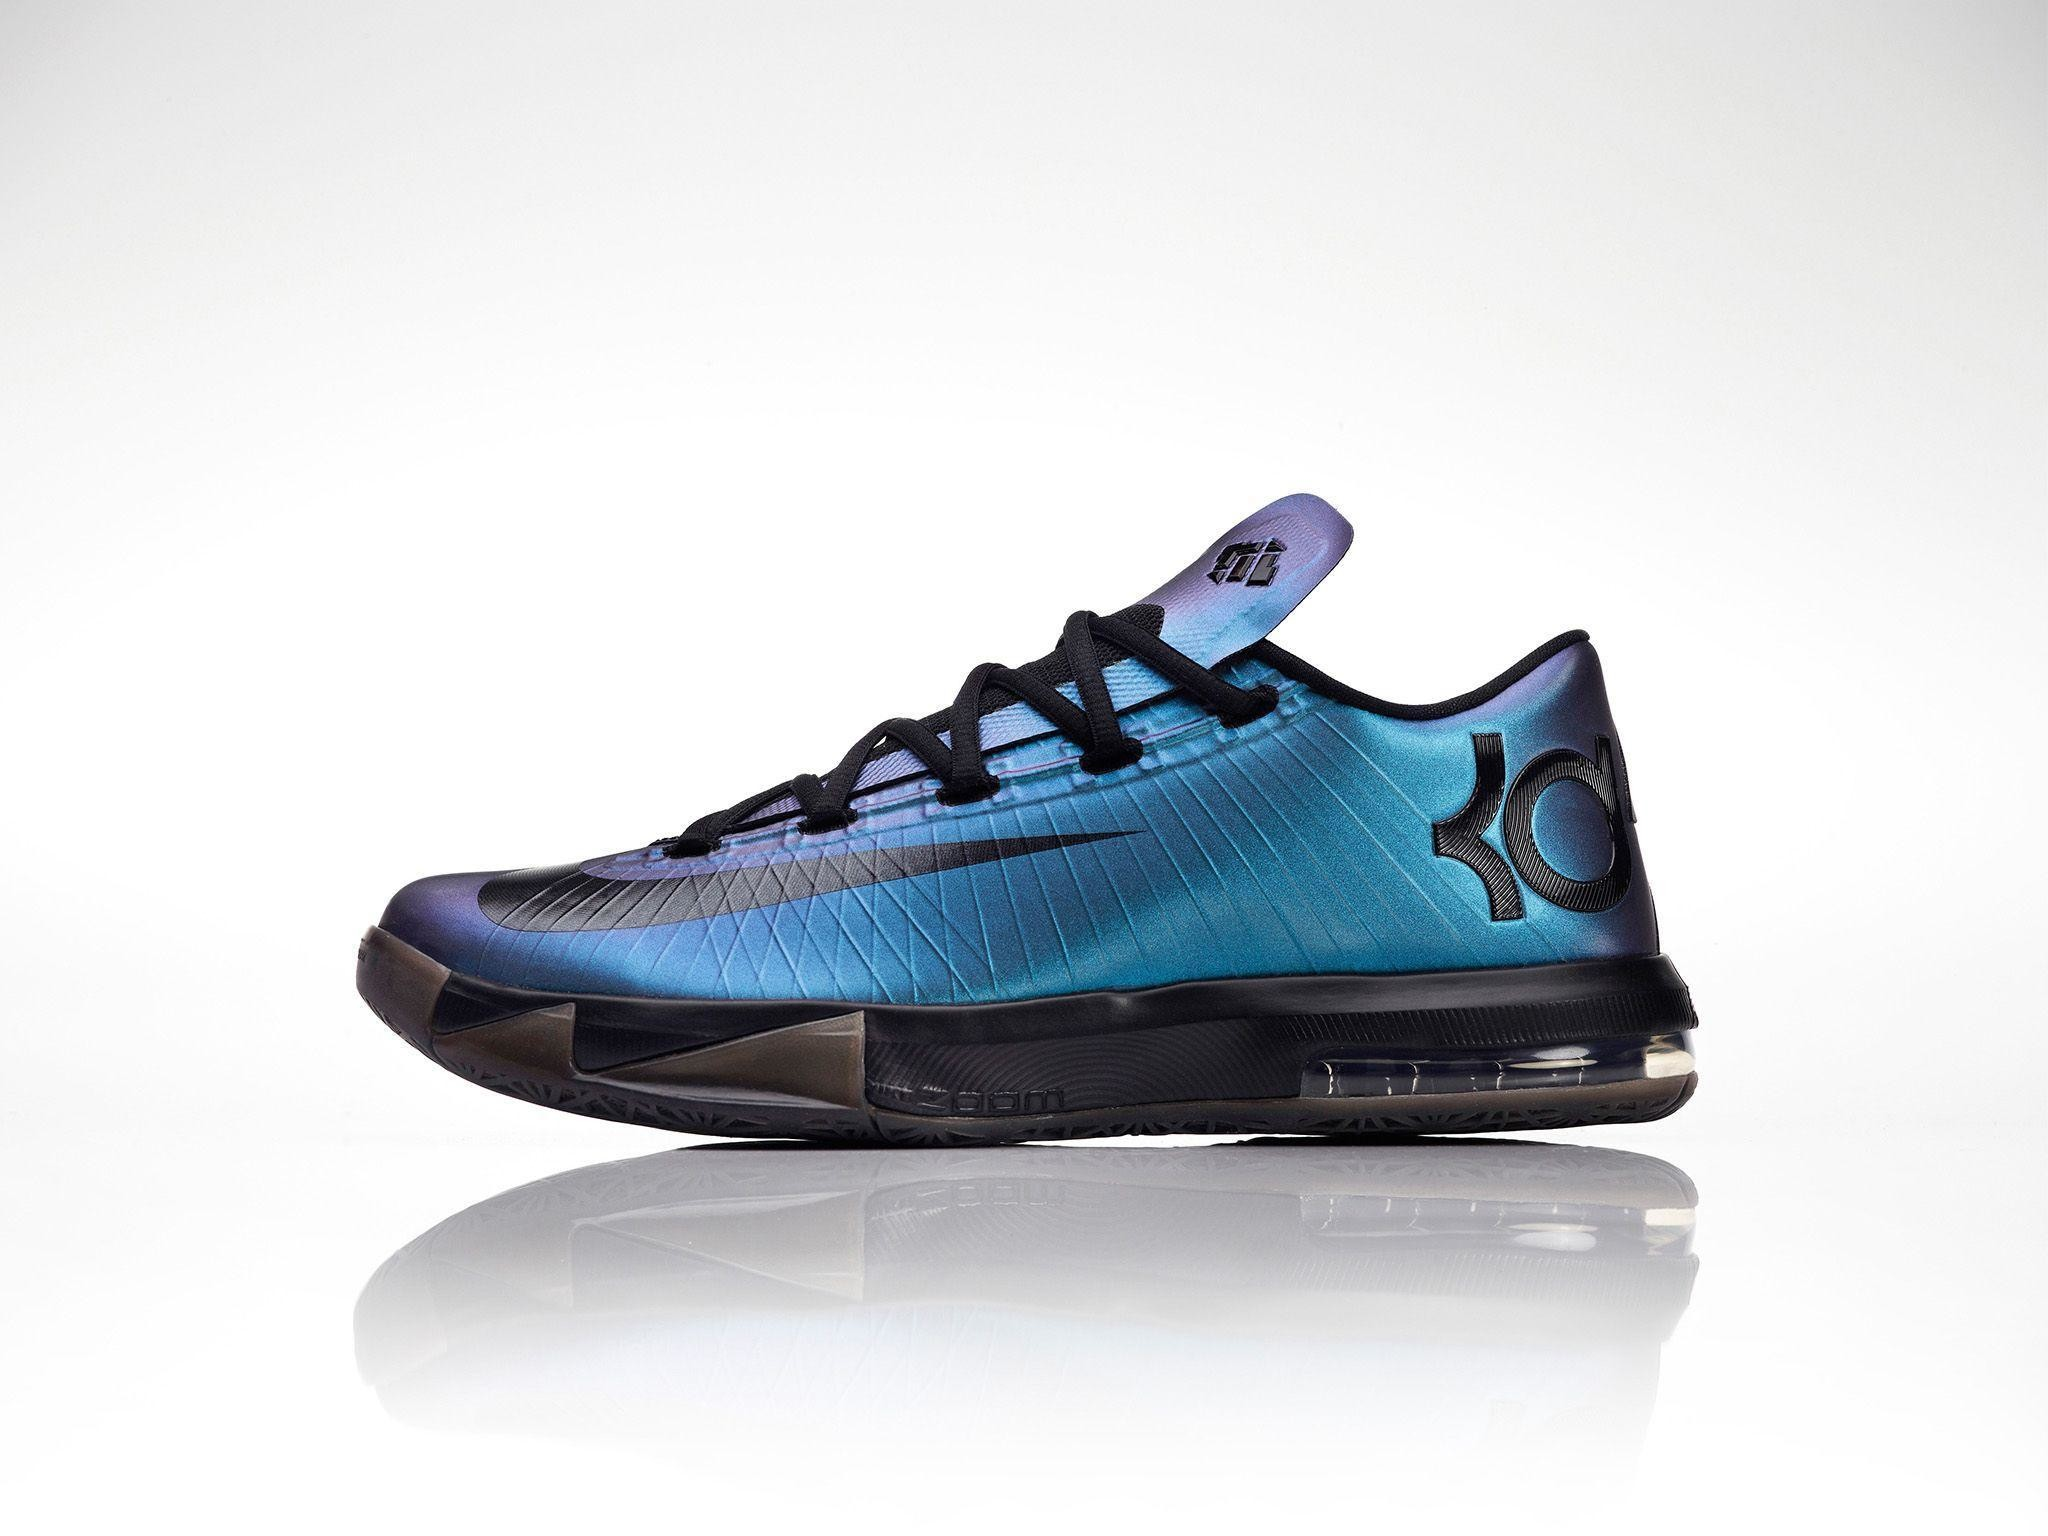 Kd Shoes Wallpapers 62 Images HD Wallpapers Download Free Images Wallpaper [1000image.com]